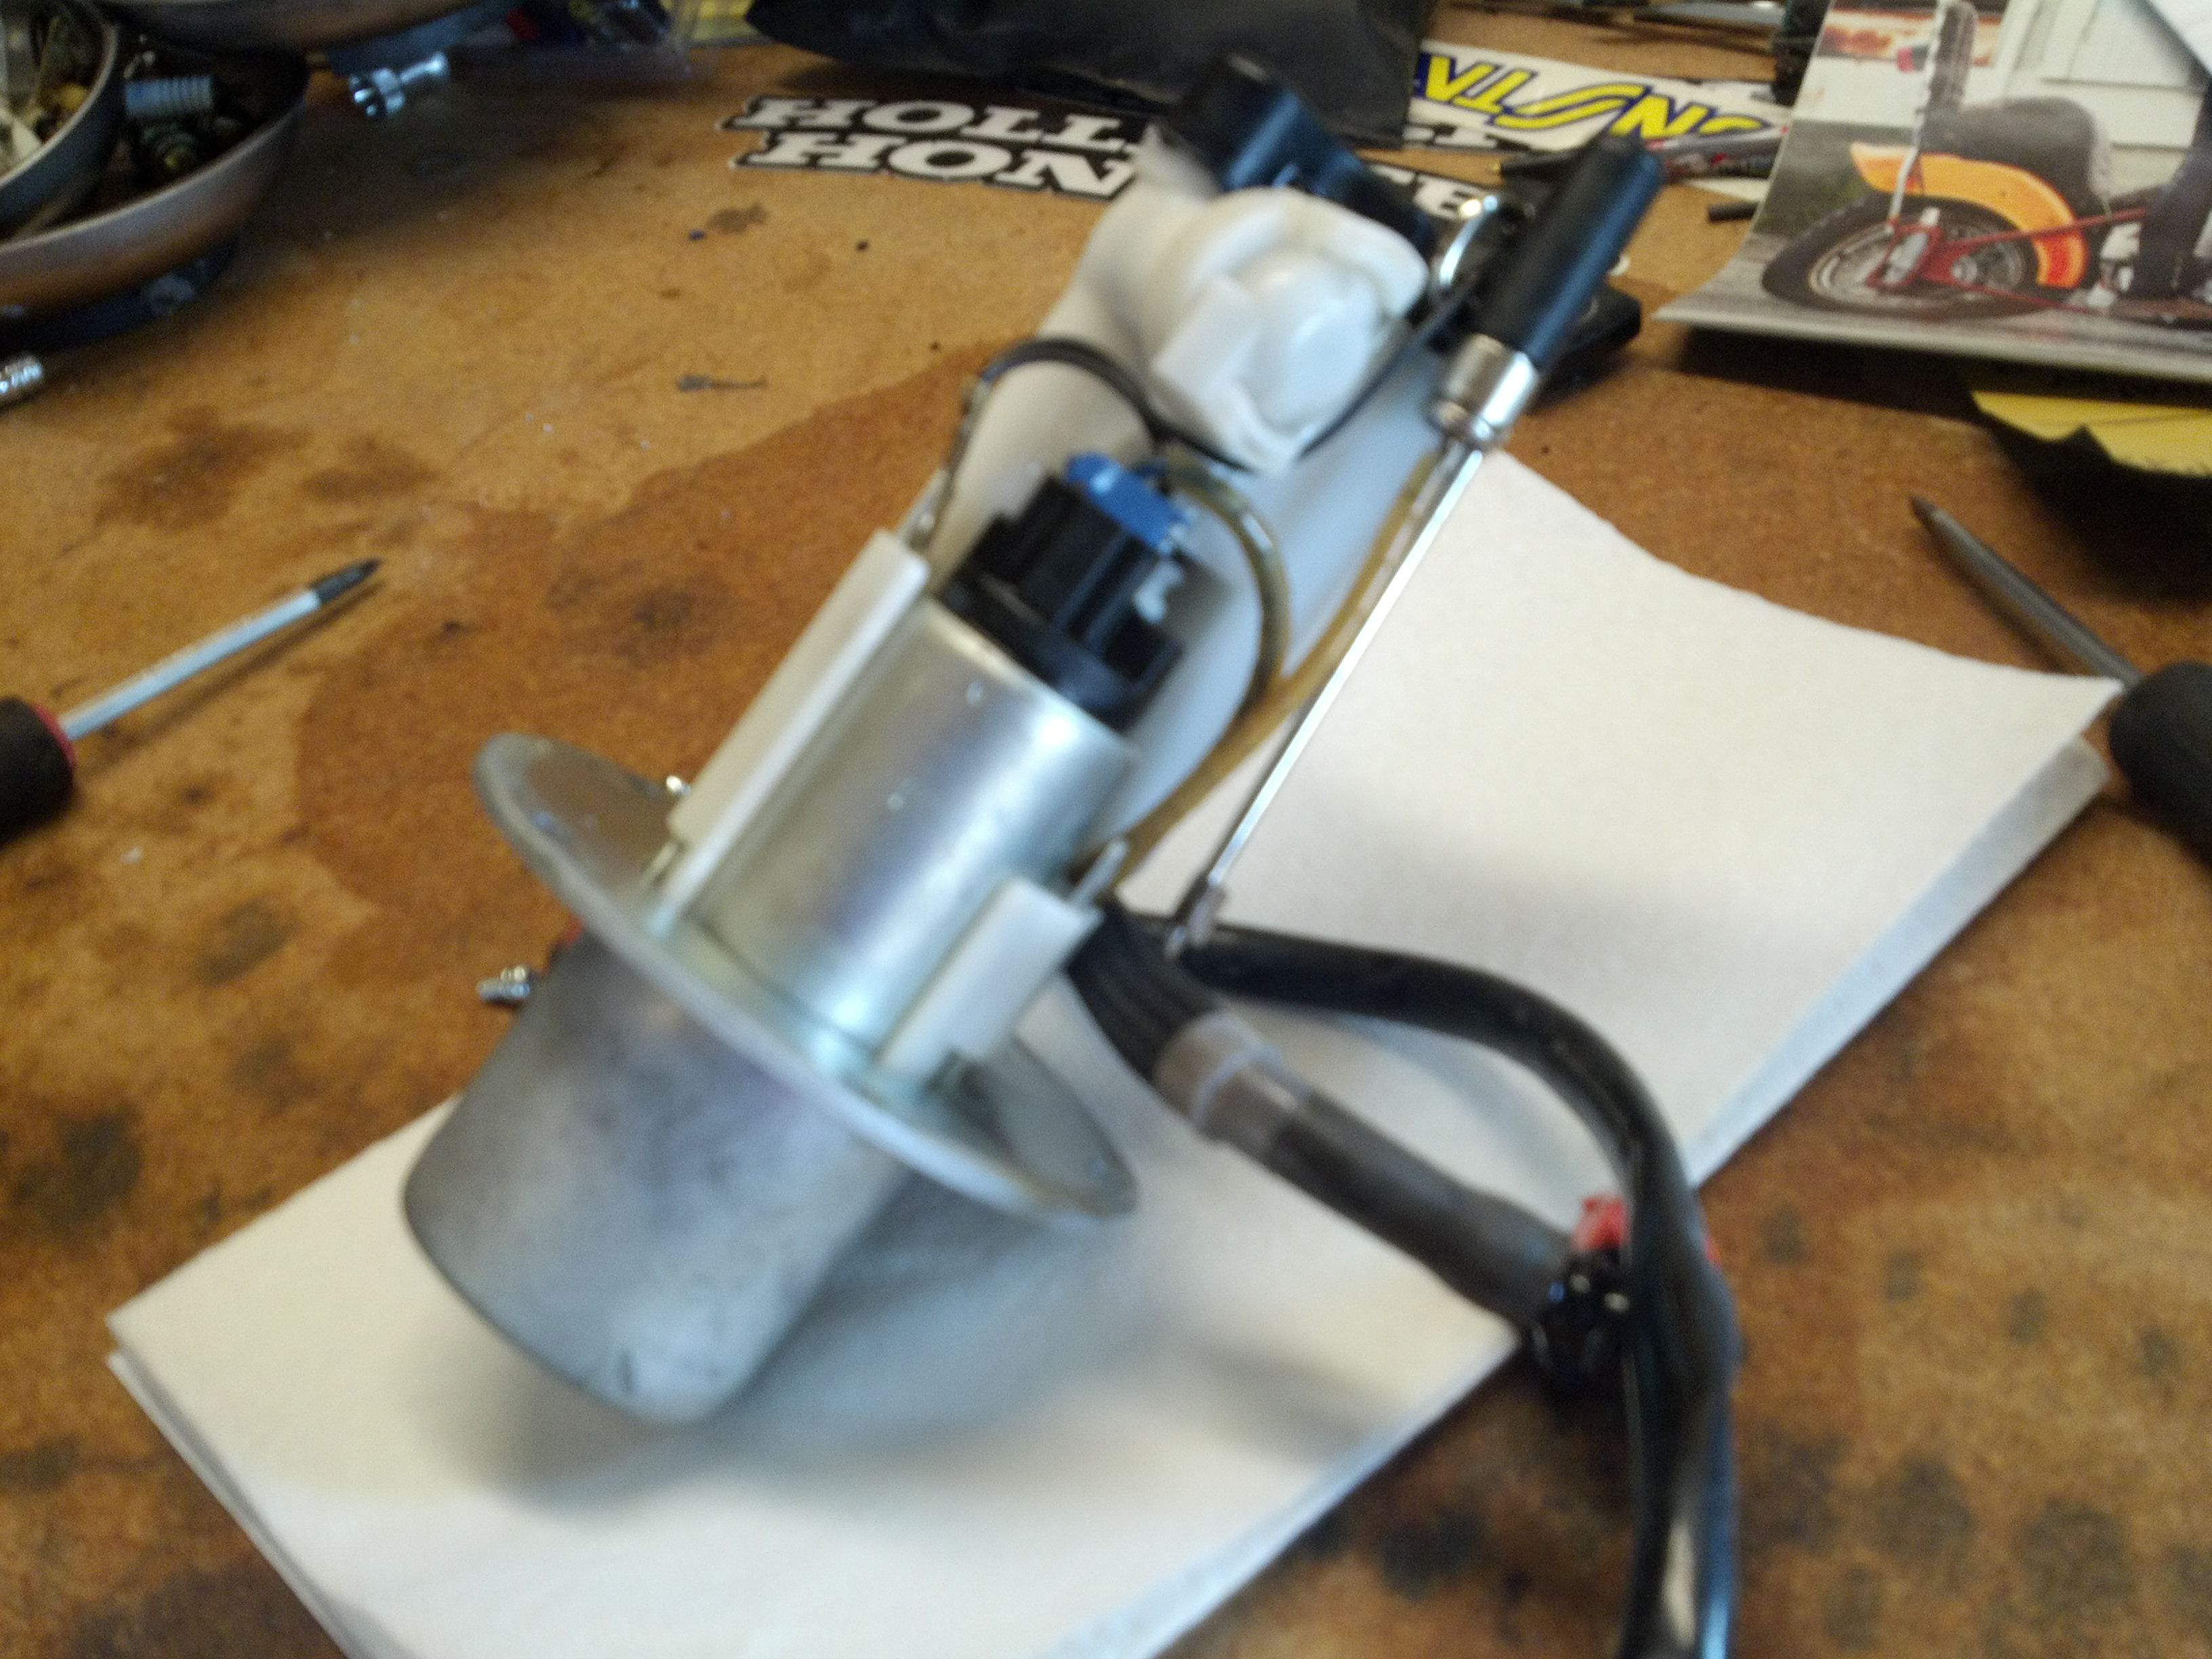 9297d1331443926 how service fuel pump strainer resizedimage_1331441046475 how to service fuel pump and strainer zx6r forum 2006 Kawasaki ZX636 Wiring-Diagram at suagrazia.org